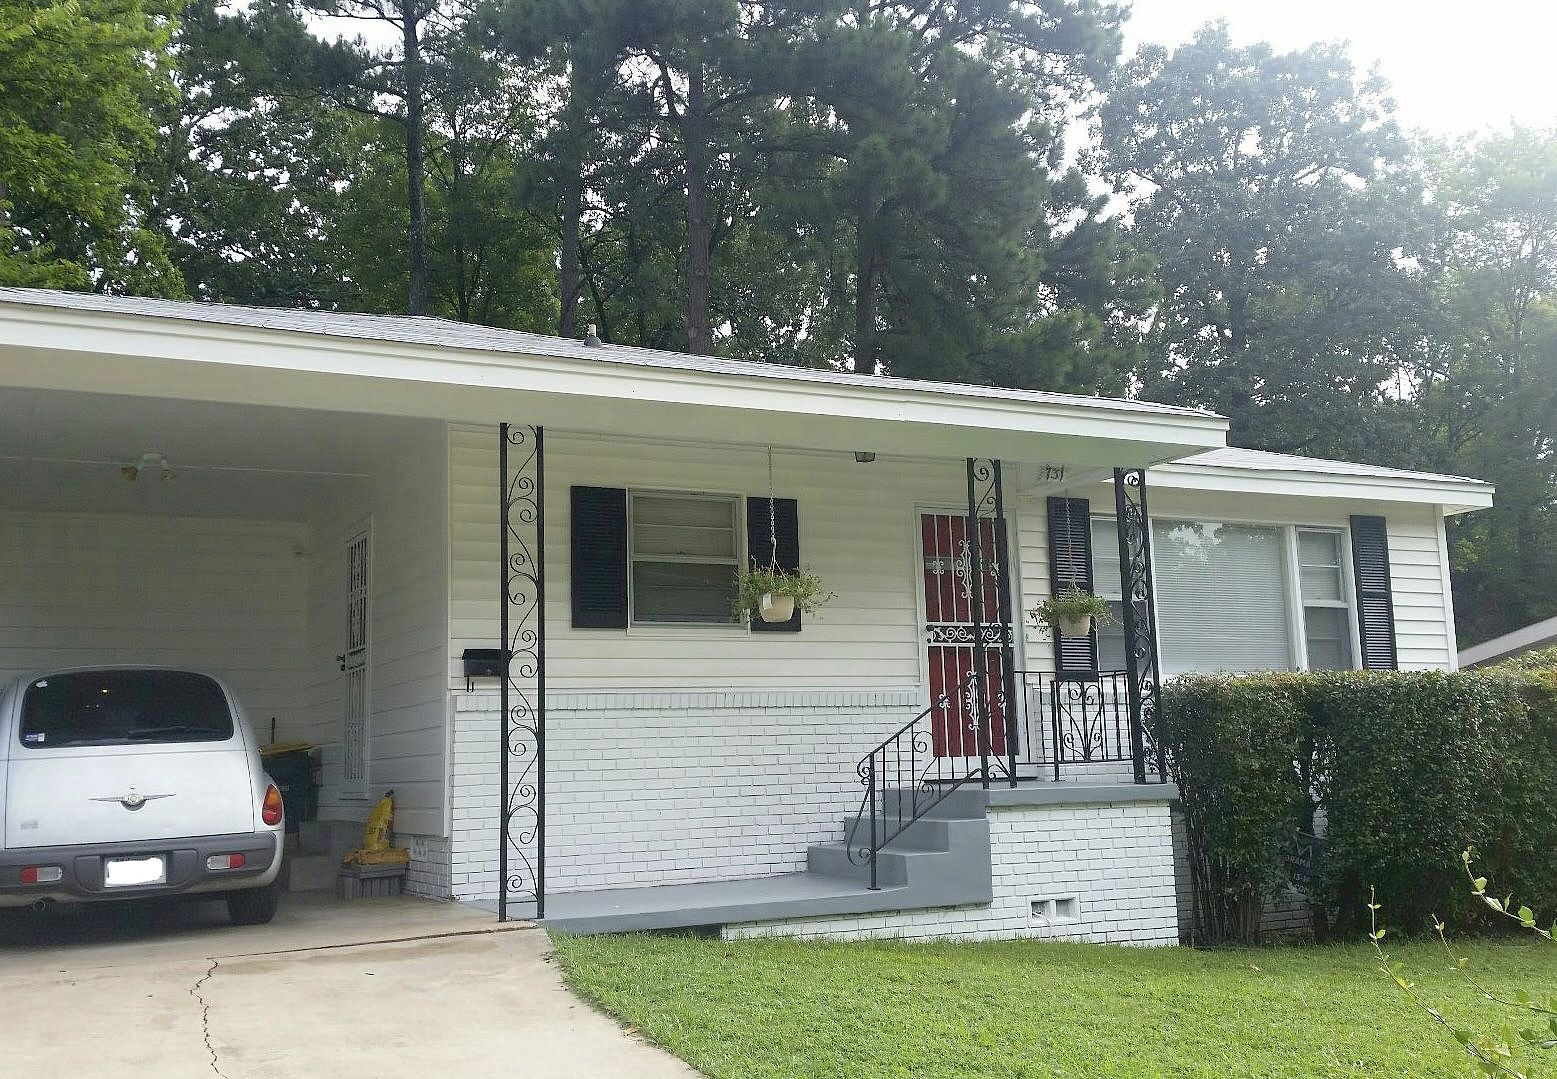 2 Bedrooms / 1 Bathrooms - Est. $810.00 / Month* for rent in North Little Rock, AR